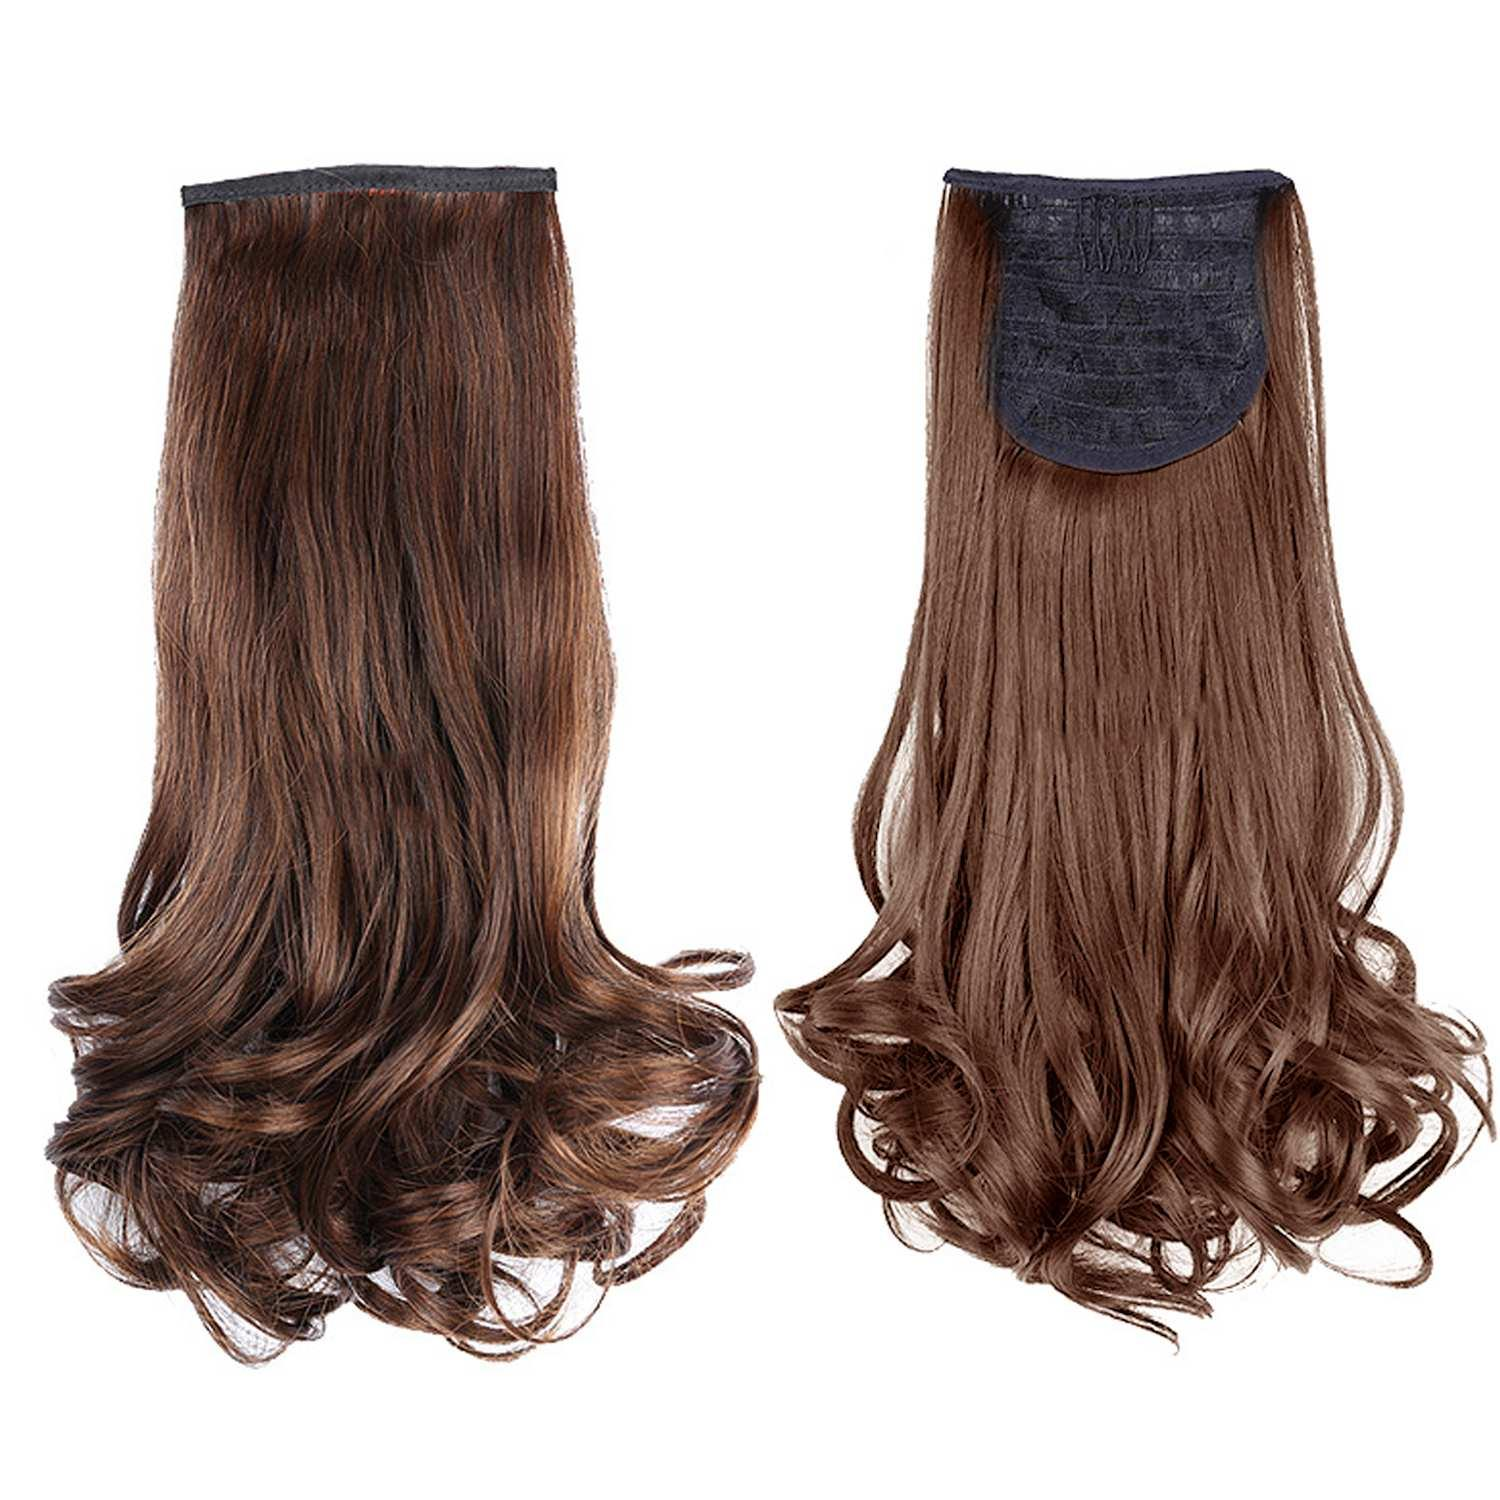 Women Clip in Curly Wave Hair Extensions Wigs Ponytail Hairpieces 48cm Brown